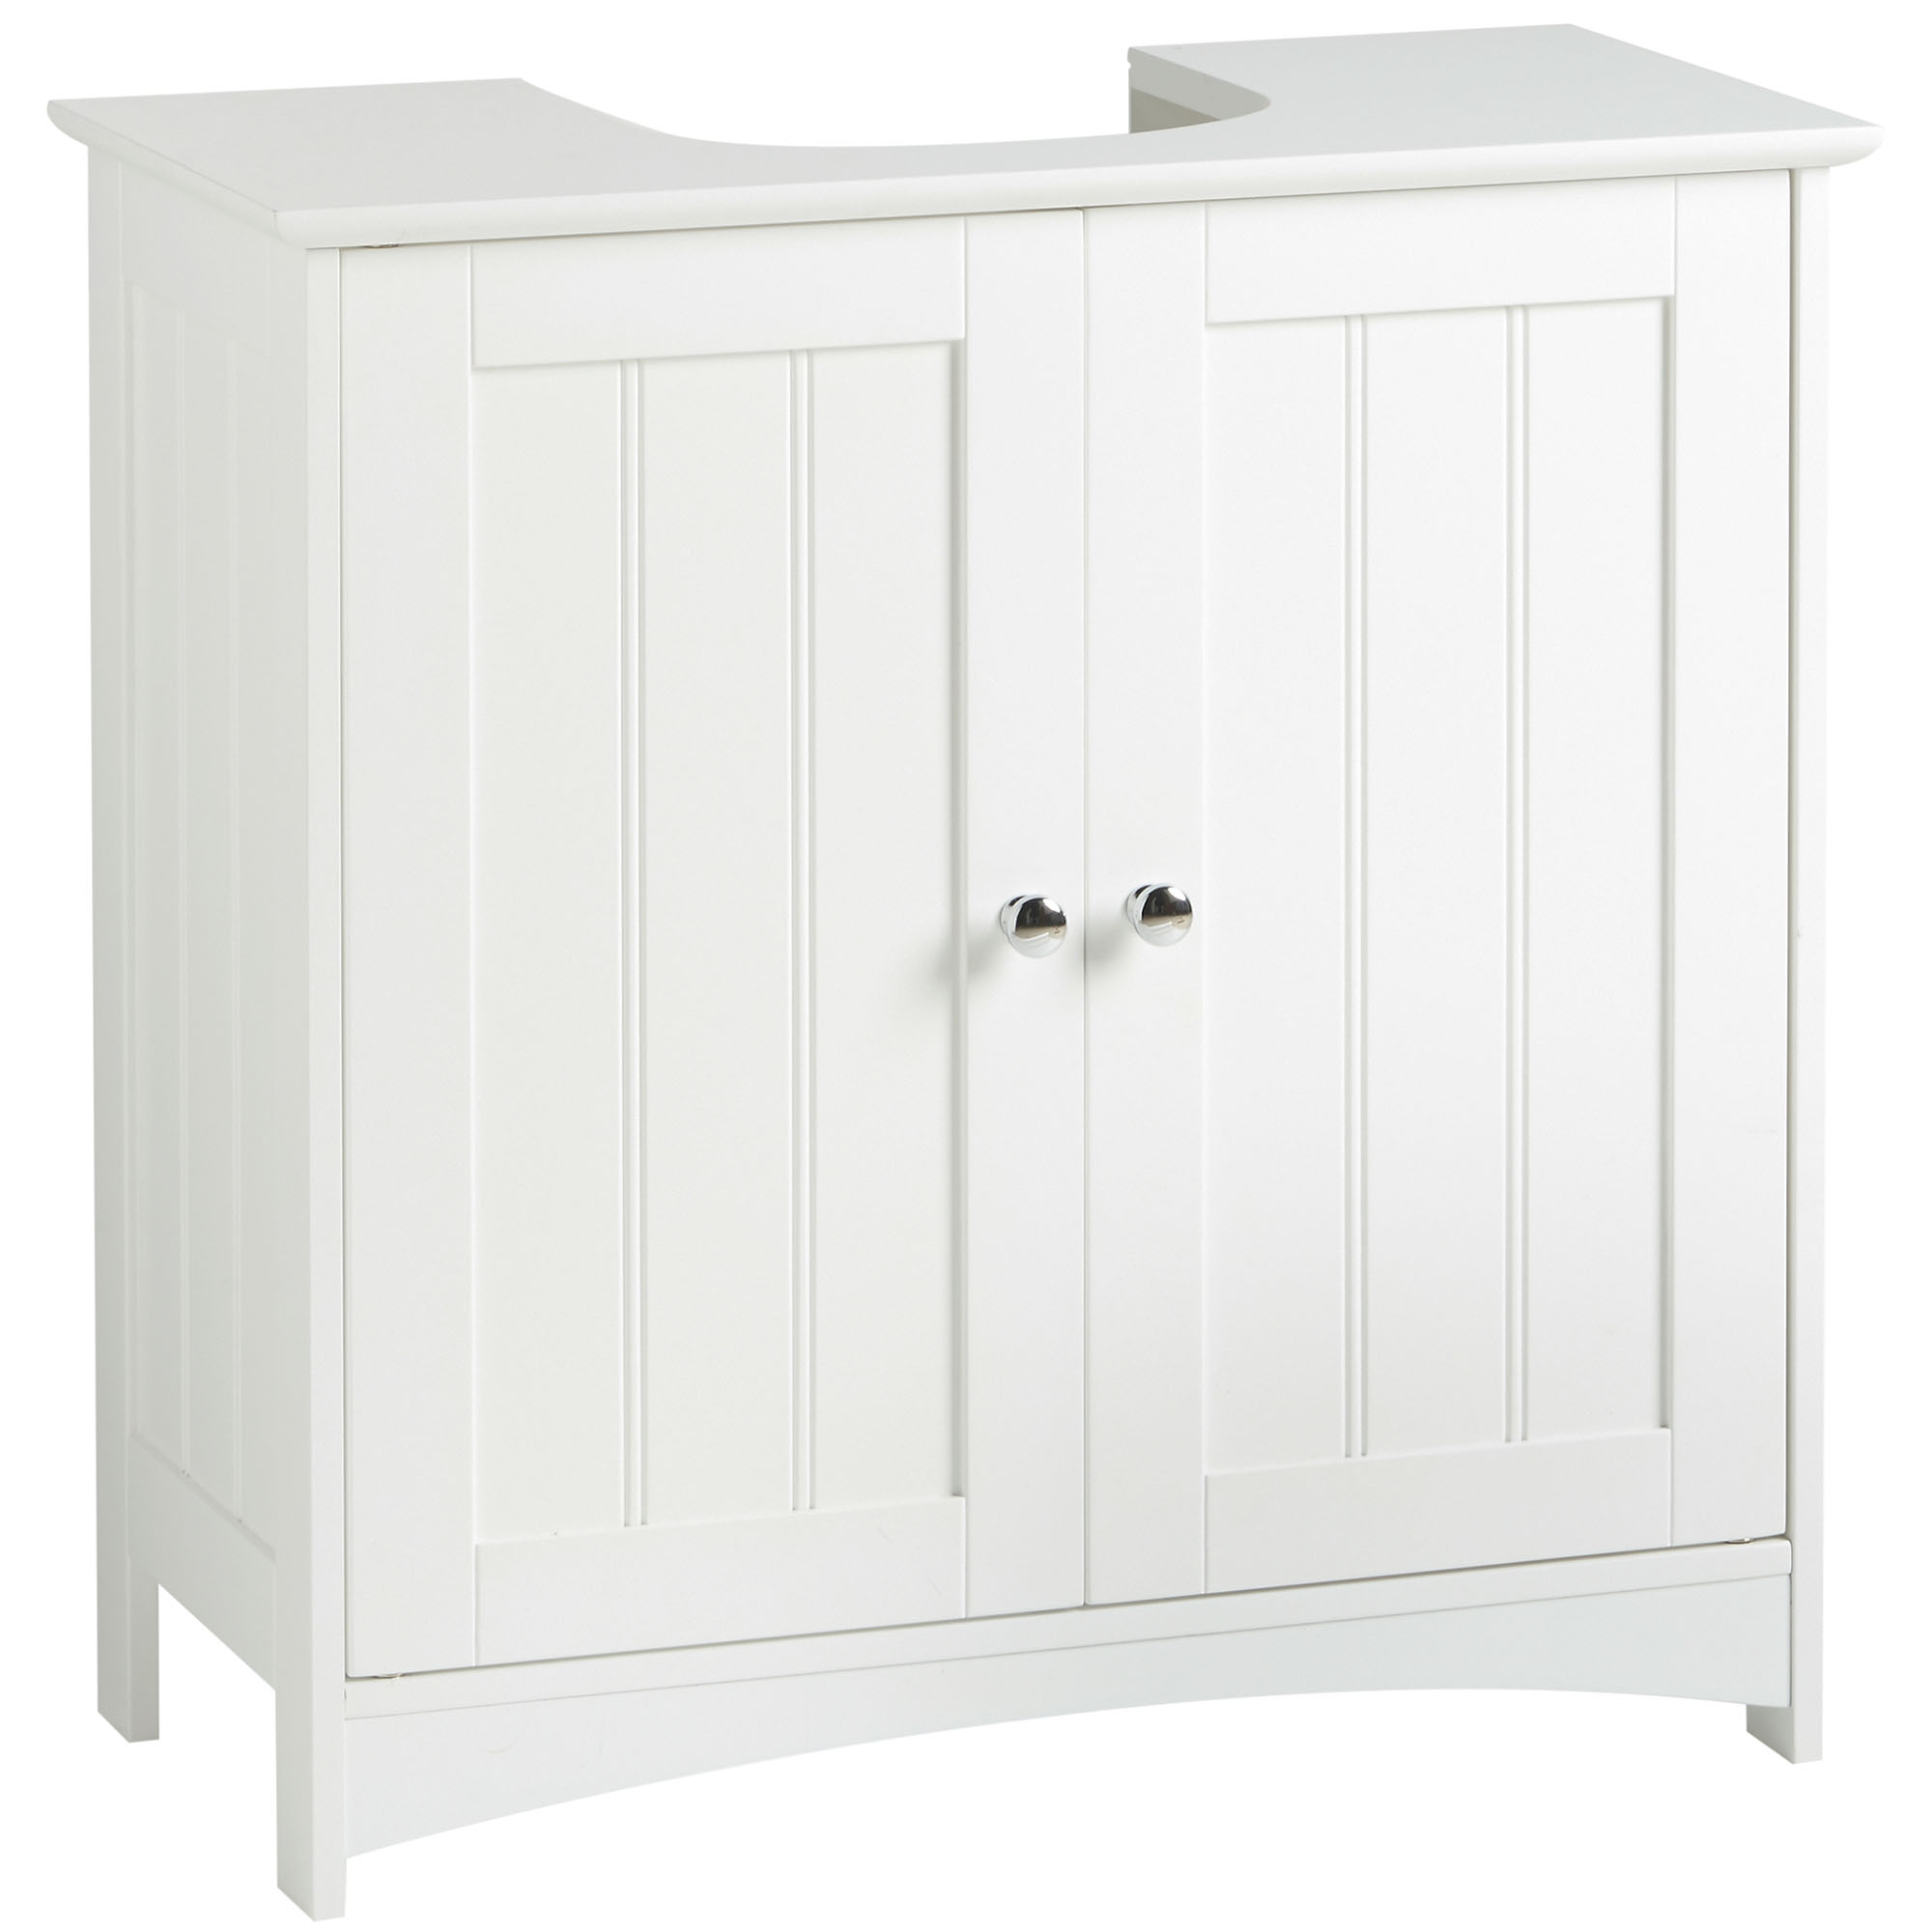 Vonhaus colonial under basin cabinet cupboard white - Under sink bathroom storage cabinet ...